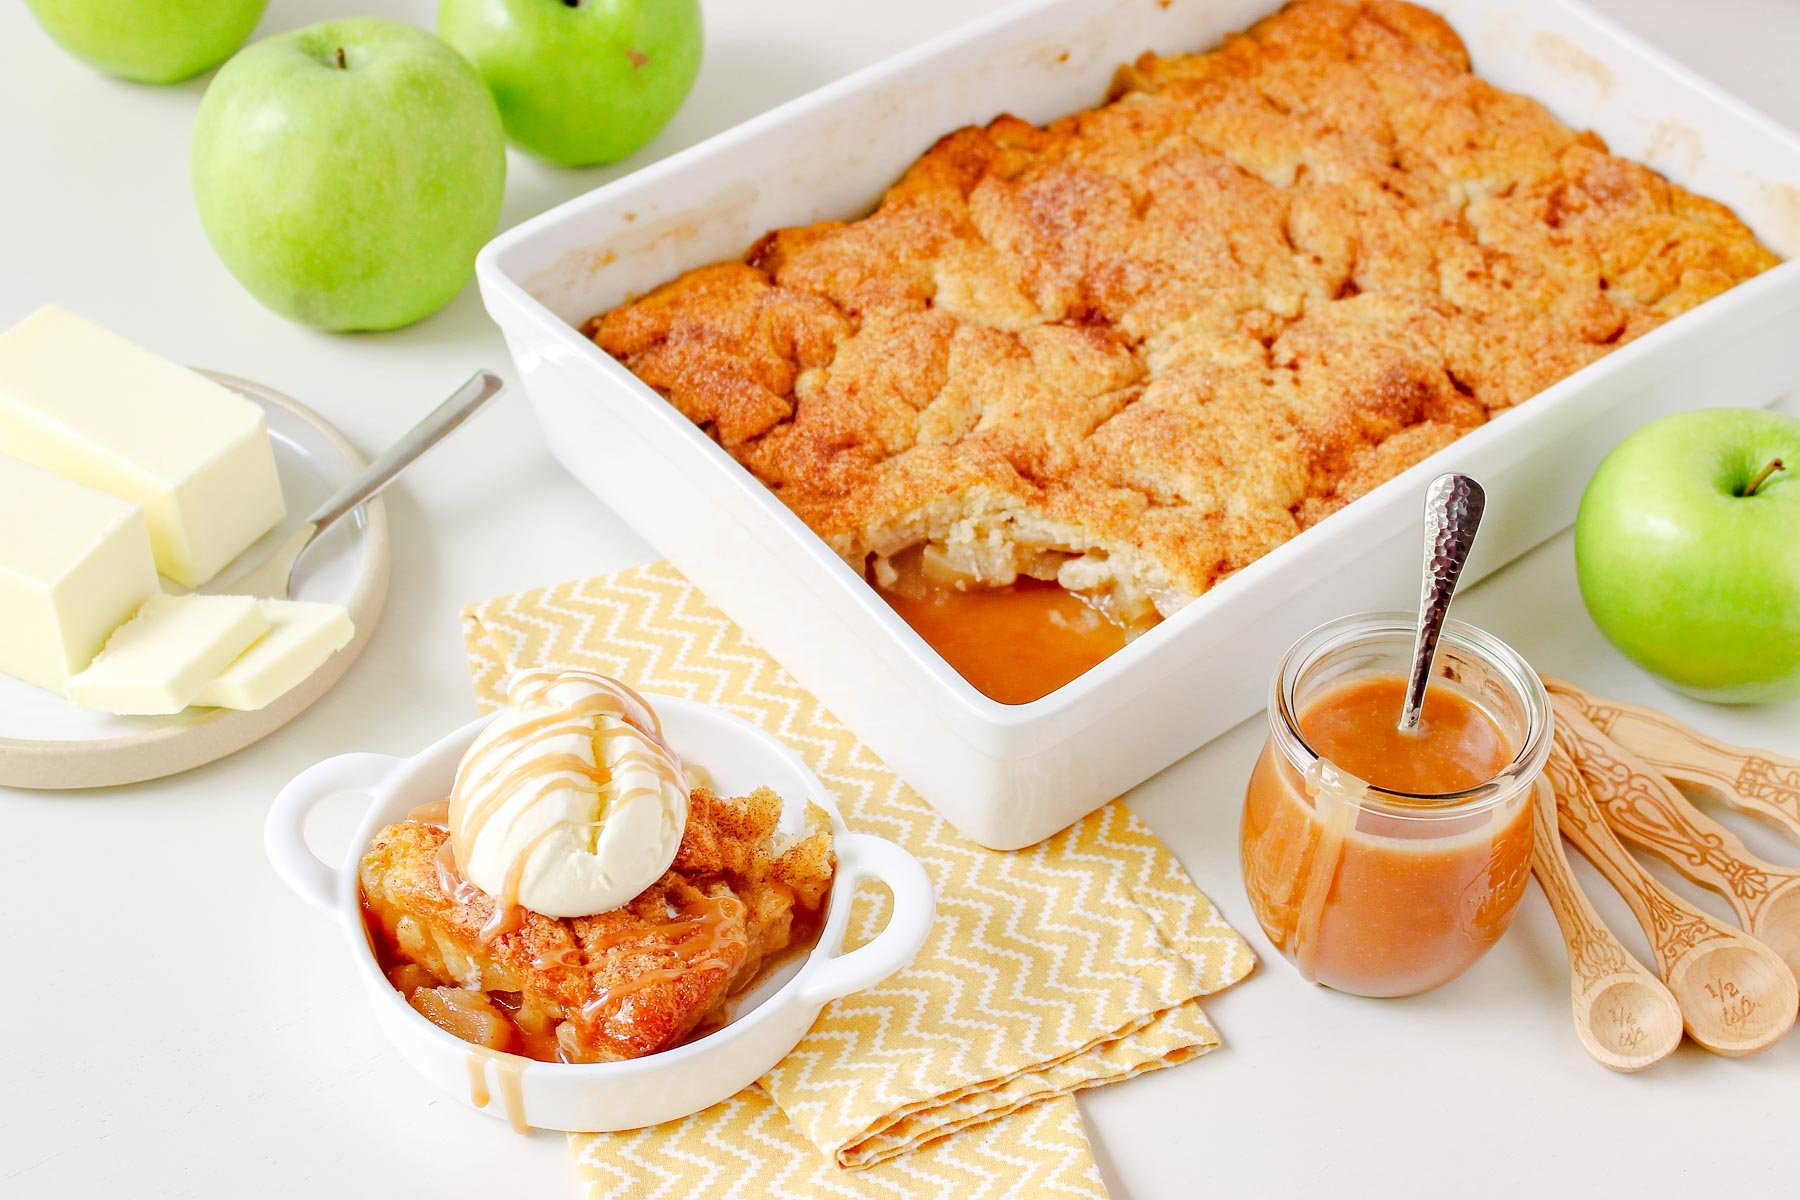 apple cobbler in large white baking dish with caramel sauce jar off to the side and green granny smith apples next to it. serving in small white bowl topping with ice cream and caramel sauce.